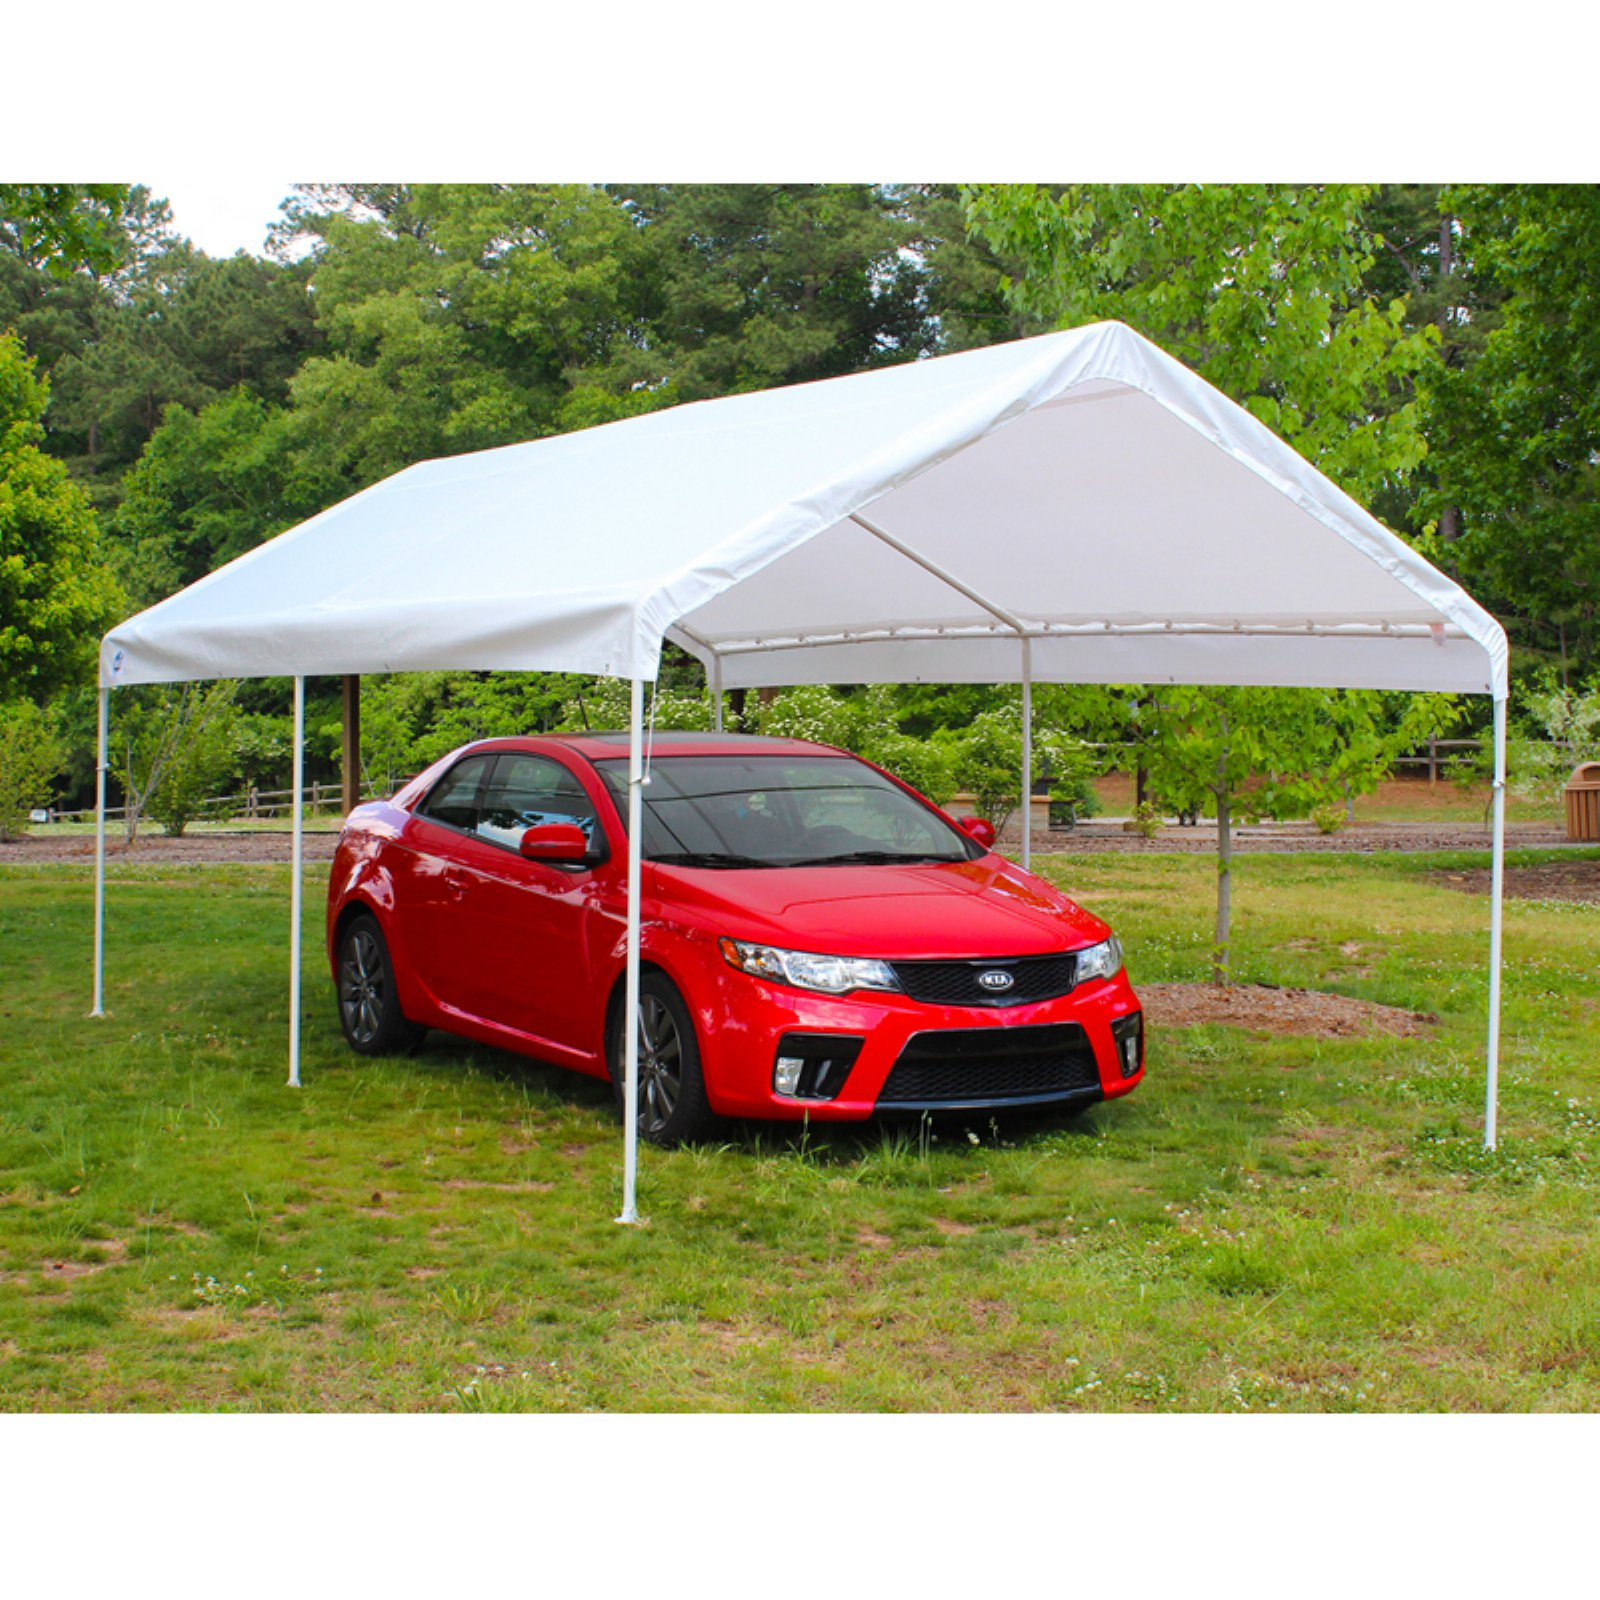 King Canopy 10 x 20 ft. Universal Canopy  sc 1 st  Walmart & King Canopy 10 x 20 ft. Universal Canopy - Walmart.com